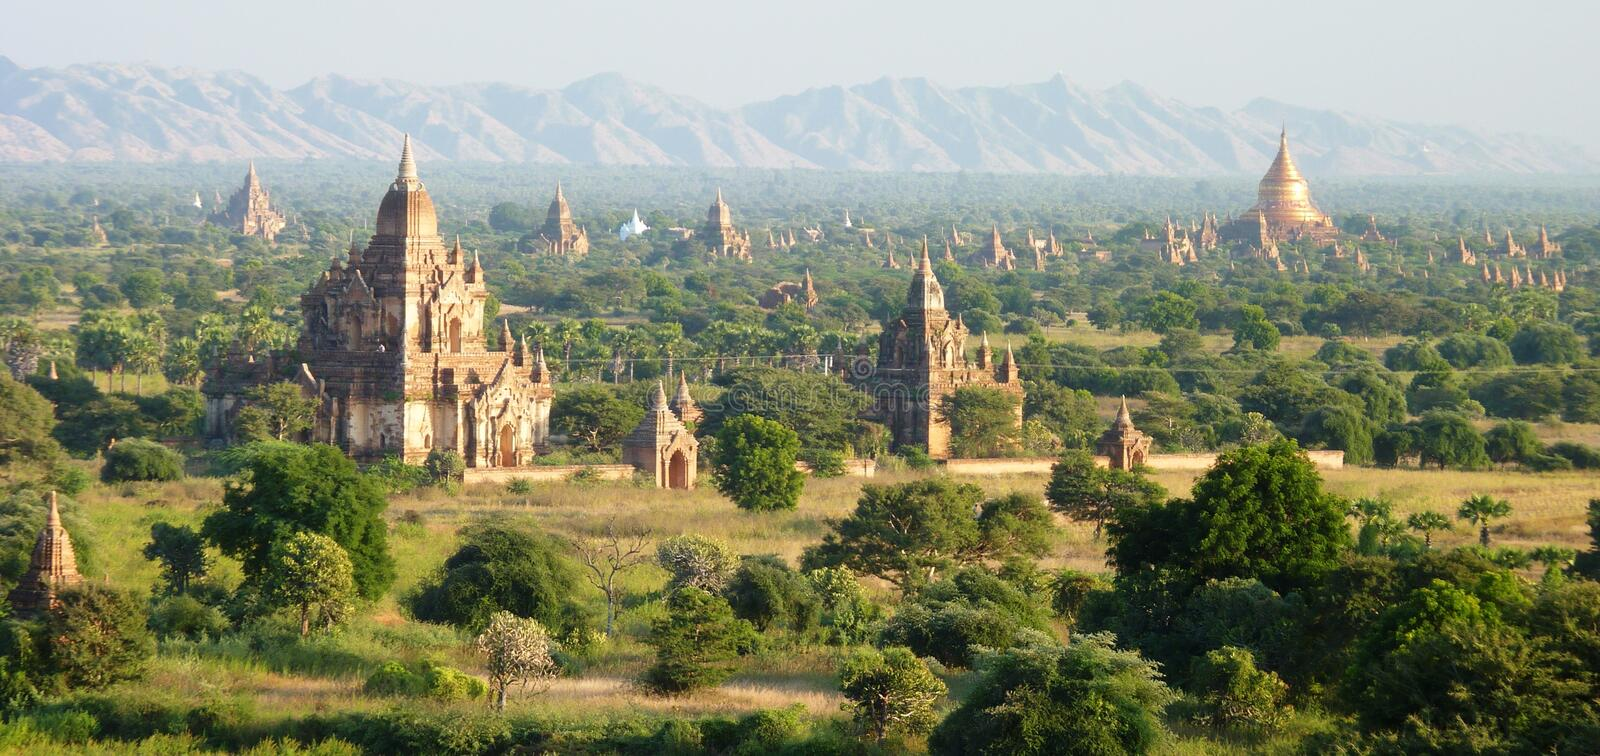 Tempel in Bagan Myanmar stockbild